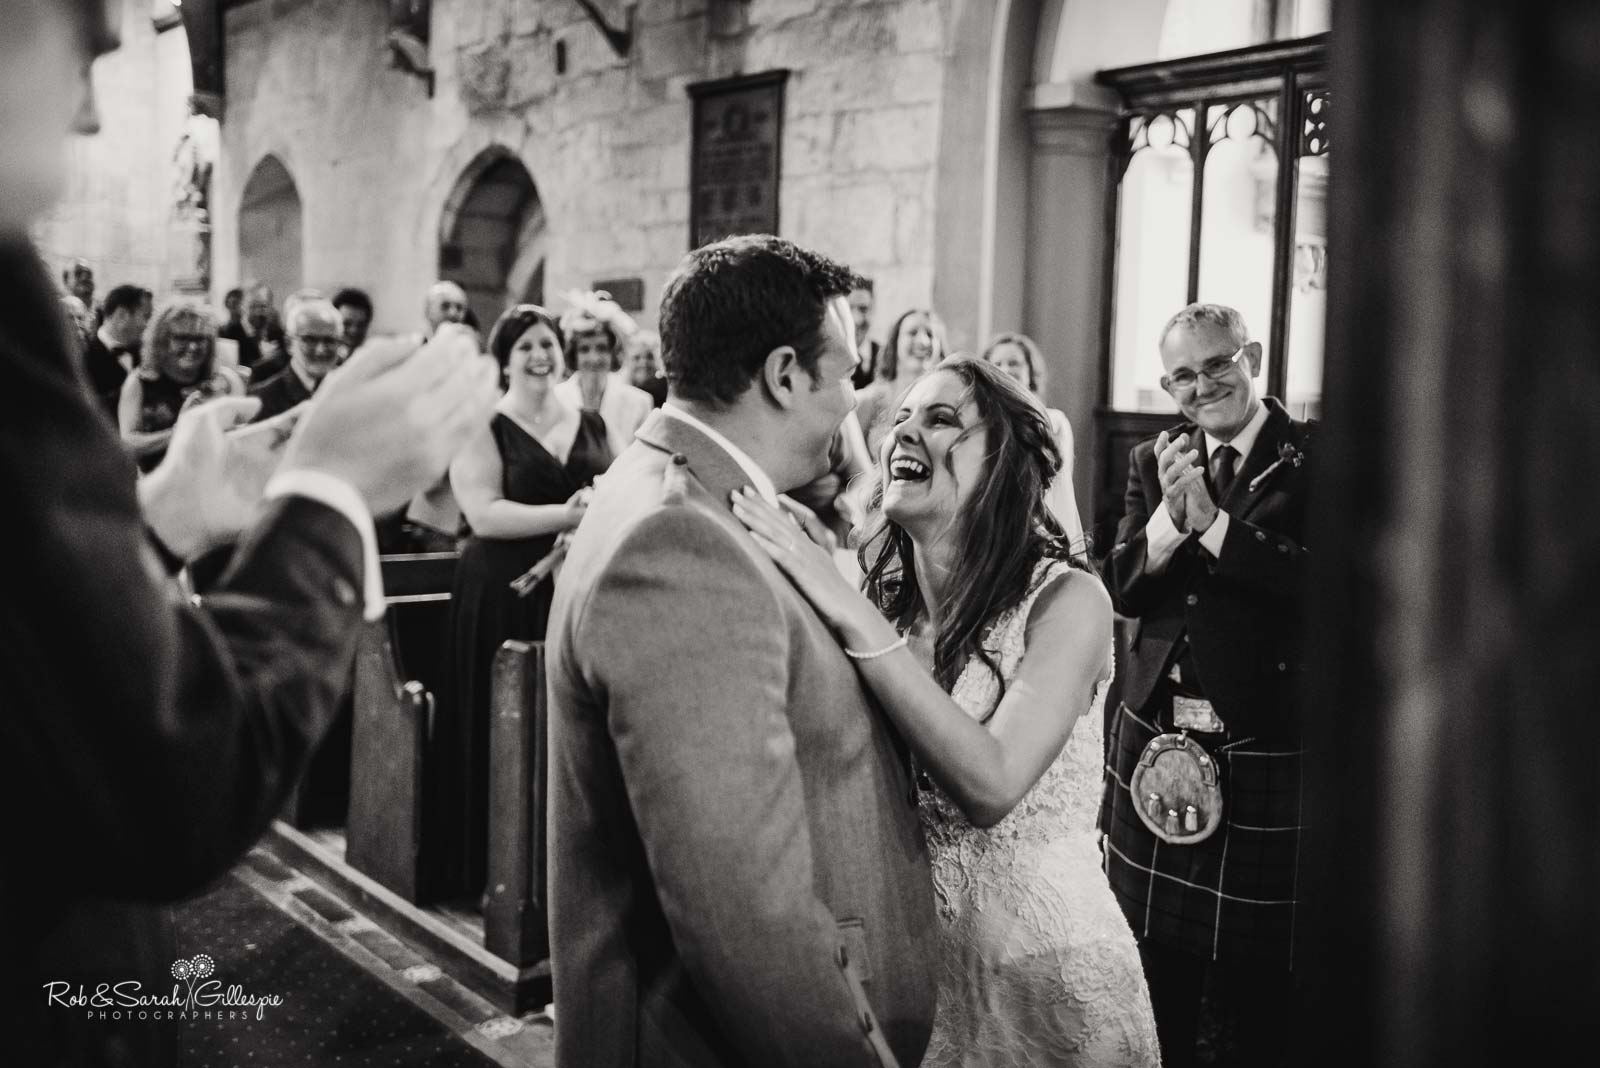 Wedding ceremony at St Giles church Packwood in Warwickshire